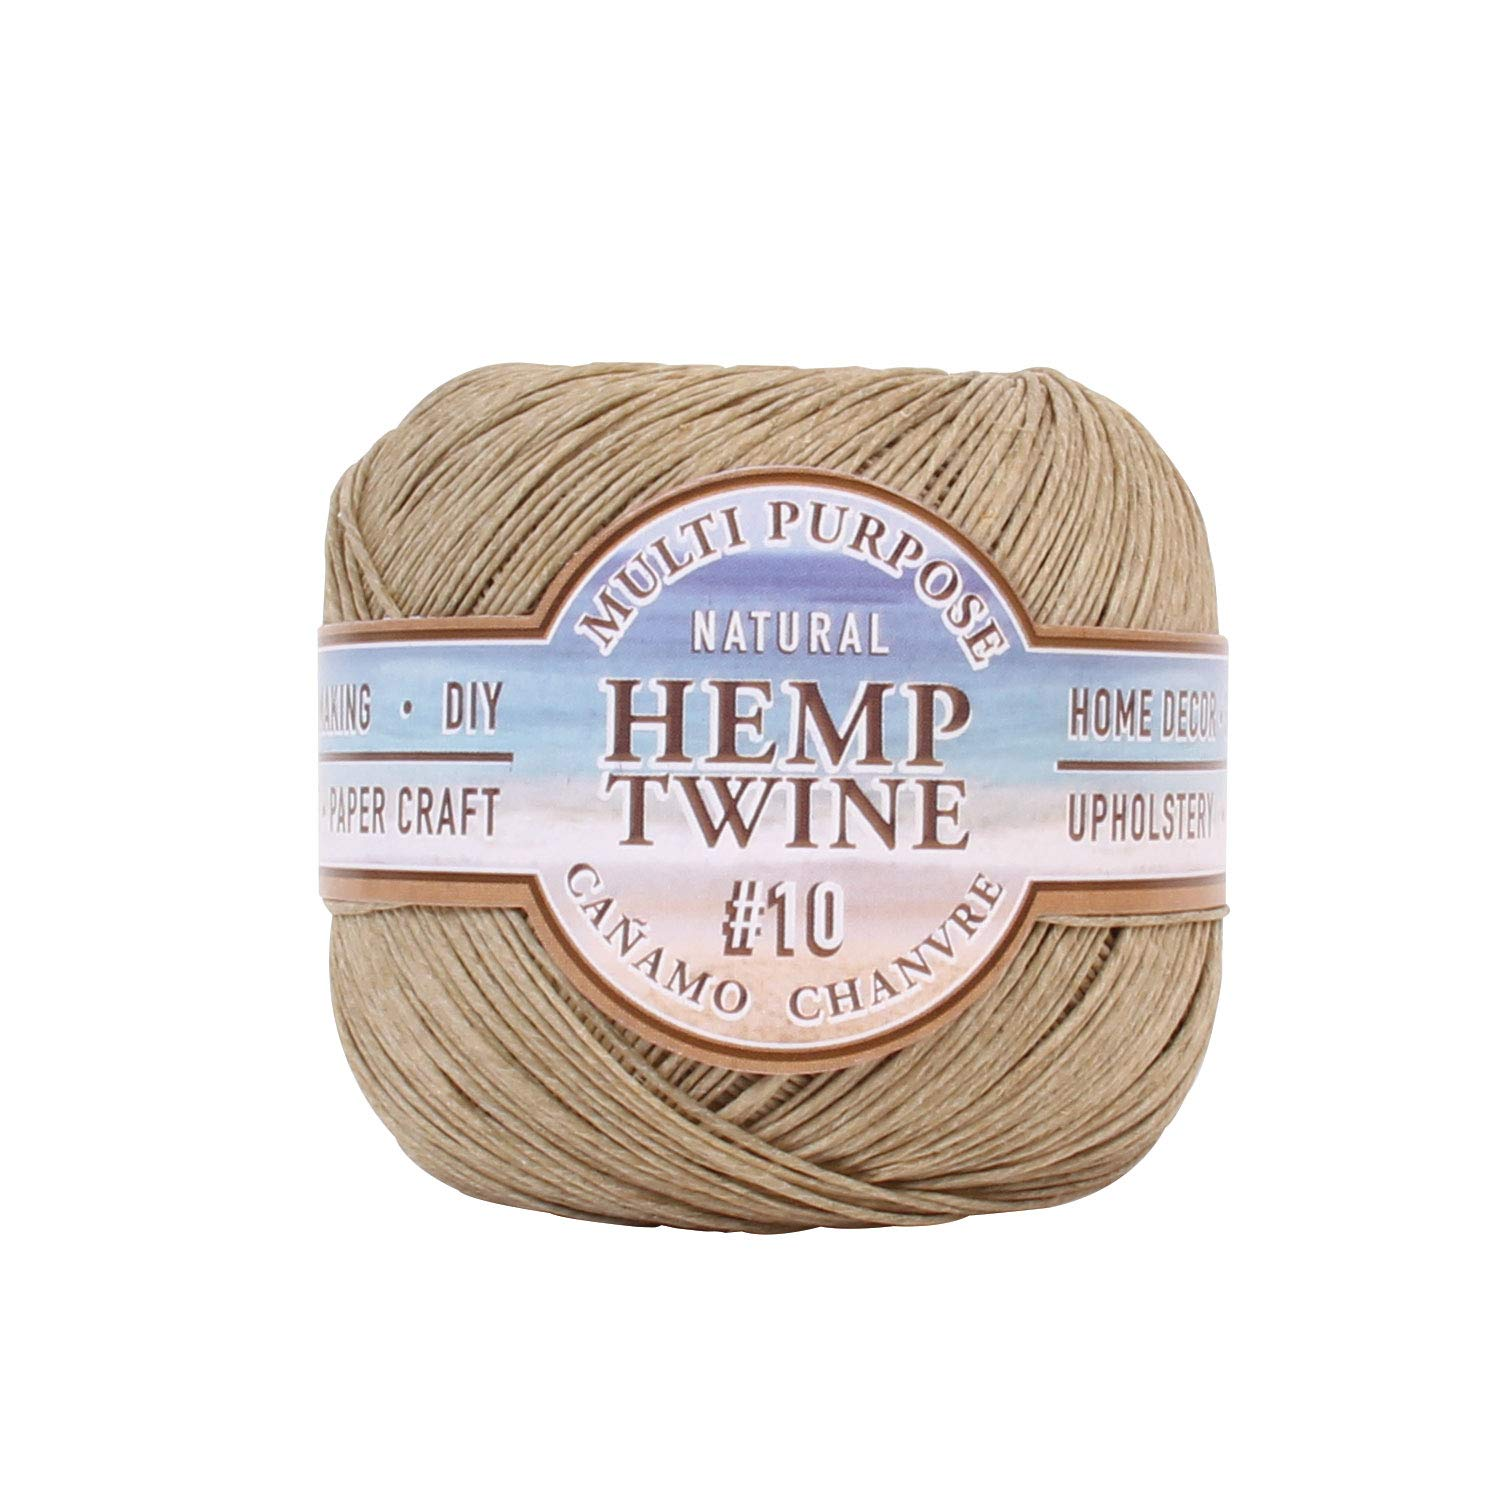 Hemptique Natural Hemp Twine #10 – Made with Love - Eco Friendly - Gardening - Macrame –Home Décor – Plant Hanger - Great for Jewelry Making, Crafts & More – #10~0.5mm (Single Pack)